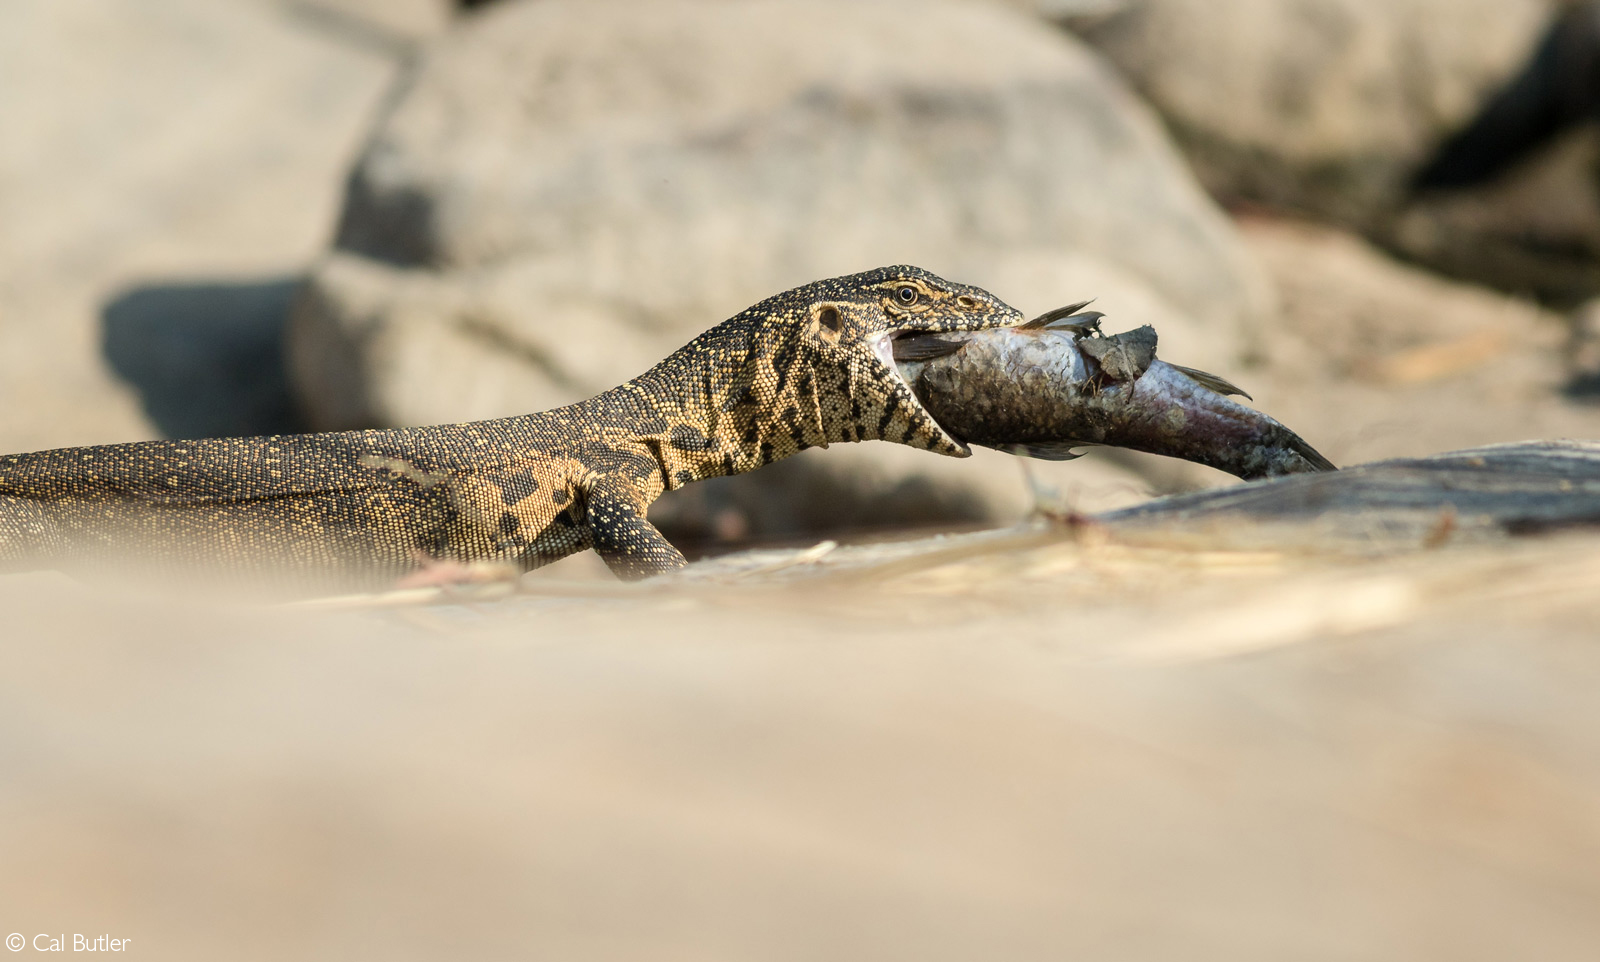 A water monitor carries a fish through a rocky section along the Sand River. Sabi Sand Private Game Reserve, South Africa© Cal Butler